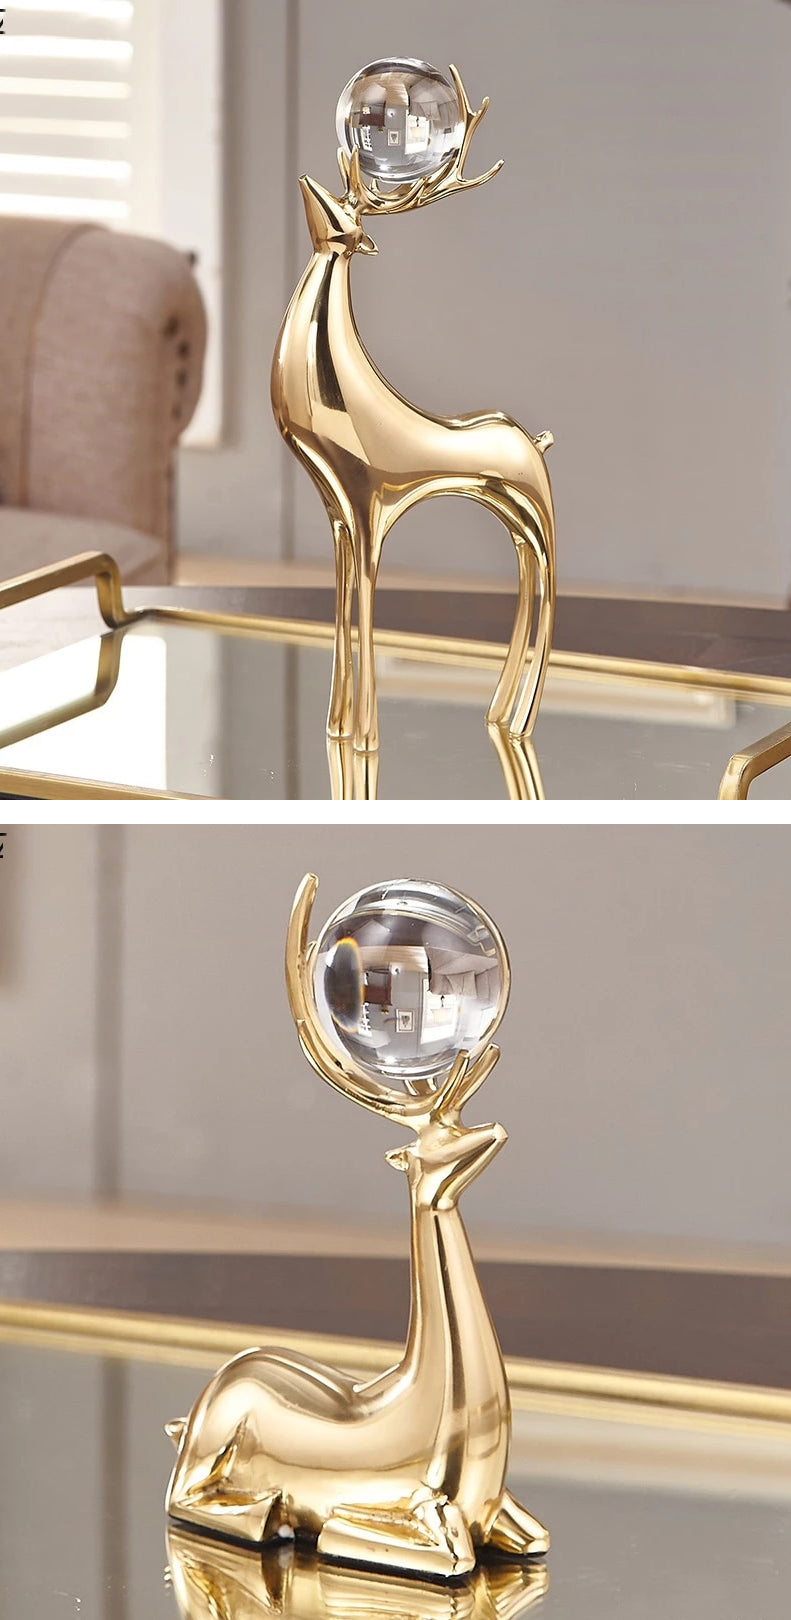 Auspicious Golden Deer Statuette Crystal Ball Embellished Copper Casting Metal Crafts Ornamental Figurines For Luxury Living Room Home Decor